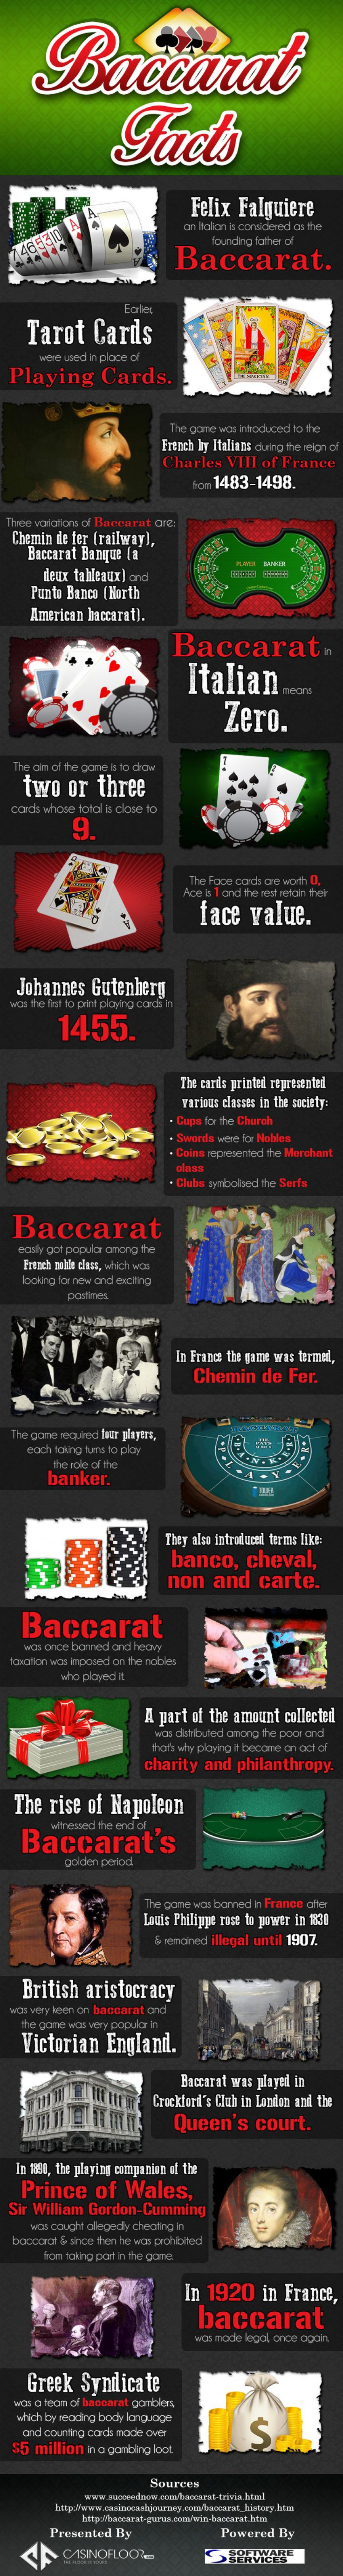 195108? w=900 - Baccarat Lingo for Beginners - Master the Game